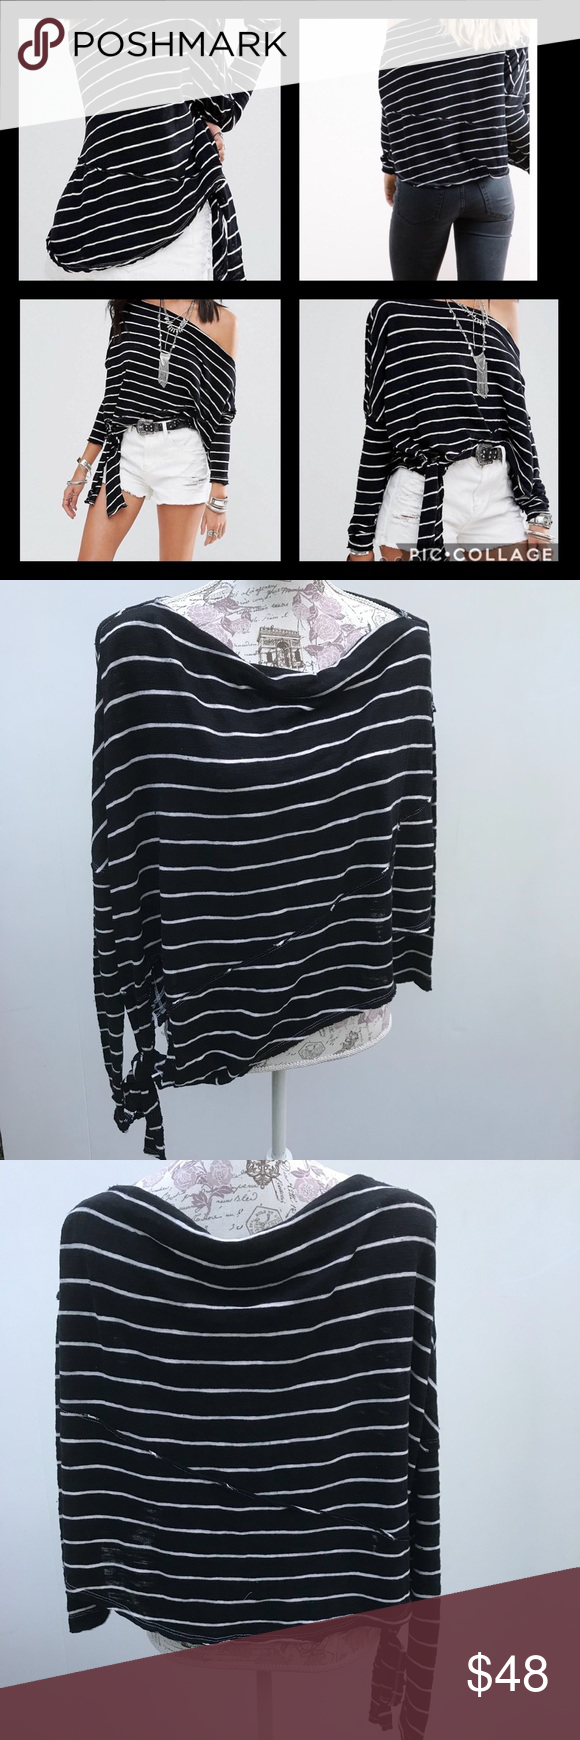 358784323e Free people we the free striped black & white top Free People we the free  love lane striped knot T-shirt off the shoulder size S retail 68 Free  People Tops ...